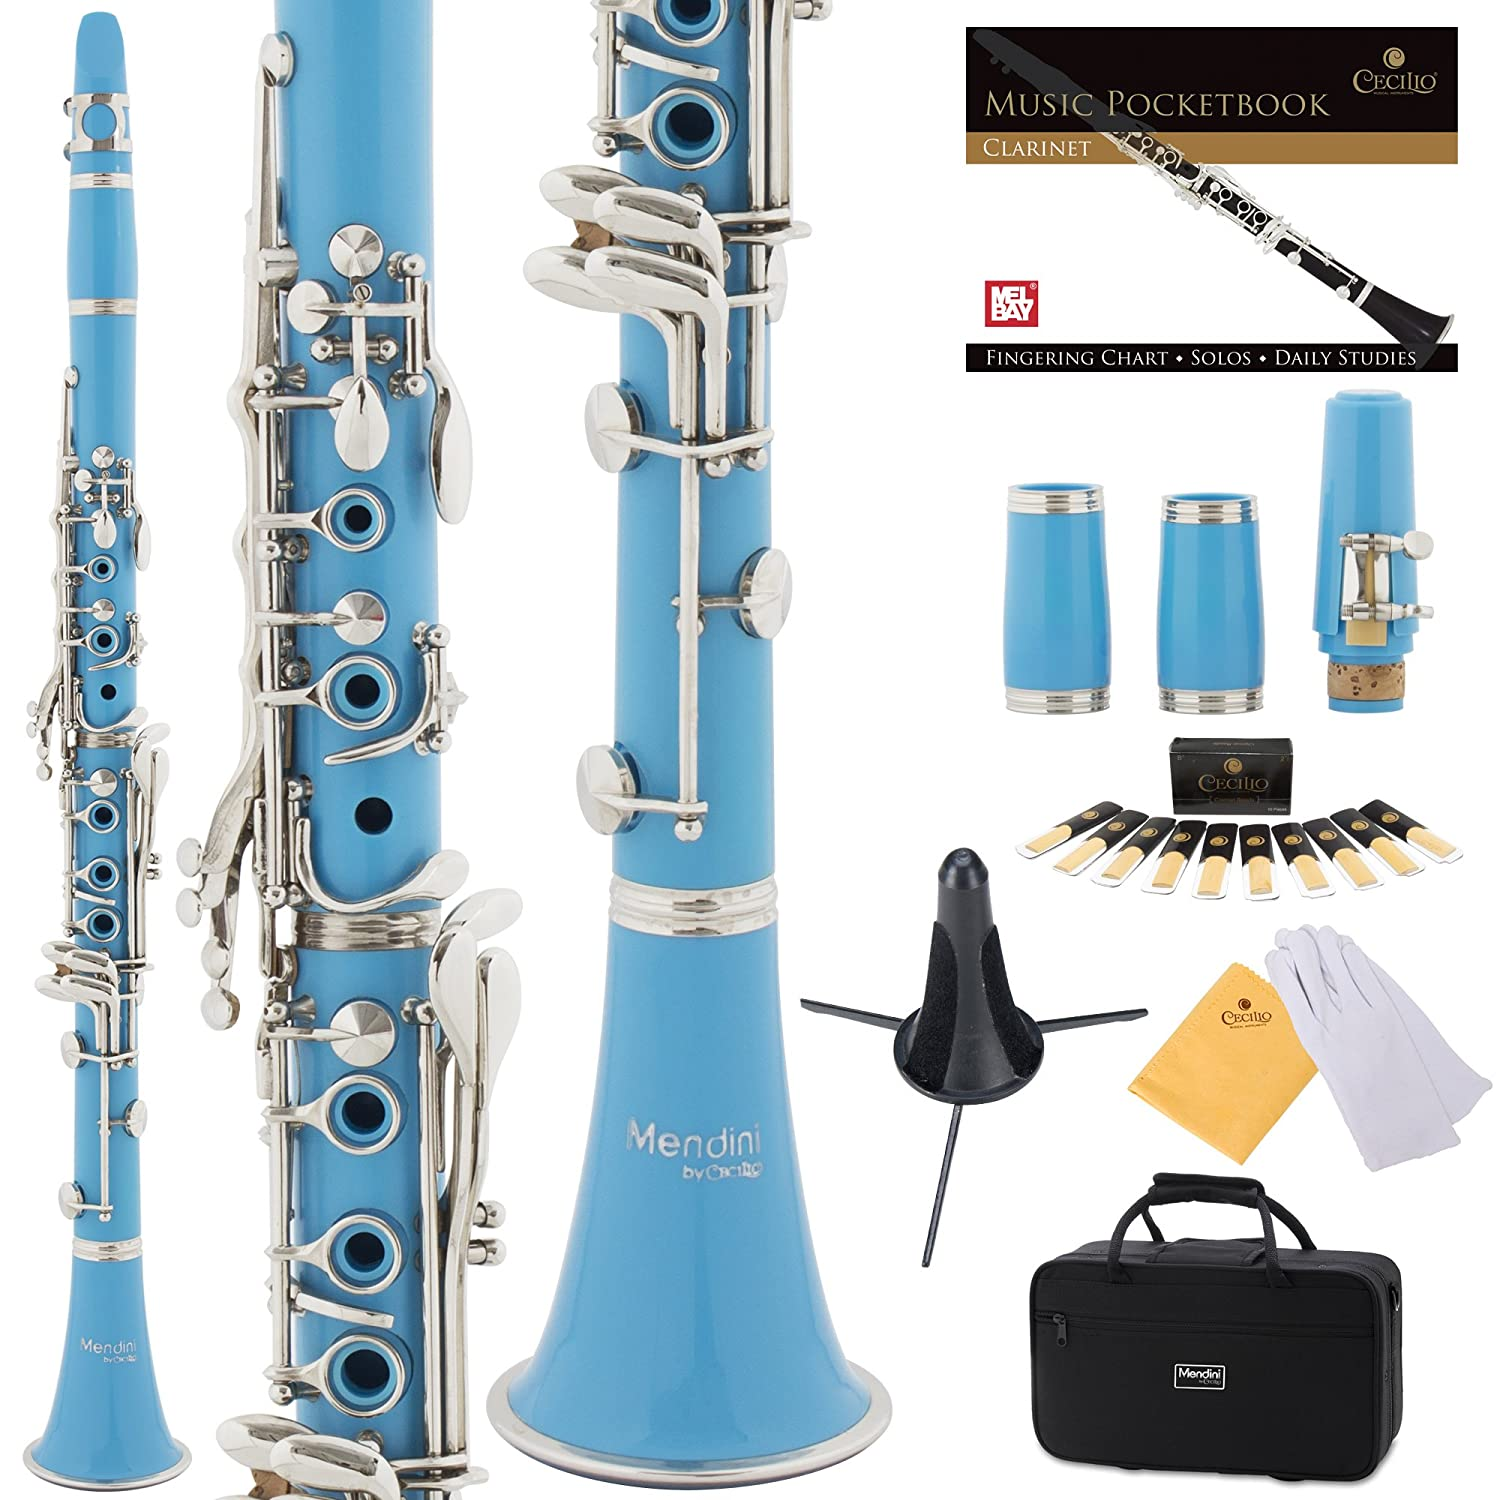 Mendini Yellow ABS B Flat Clarinet with 2 Barrels, Case, Stand, Pocketbook, Mouthpiece, 10 Reeds and More, MCT-2YL+SD+PB Cecilio Musical Instruments